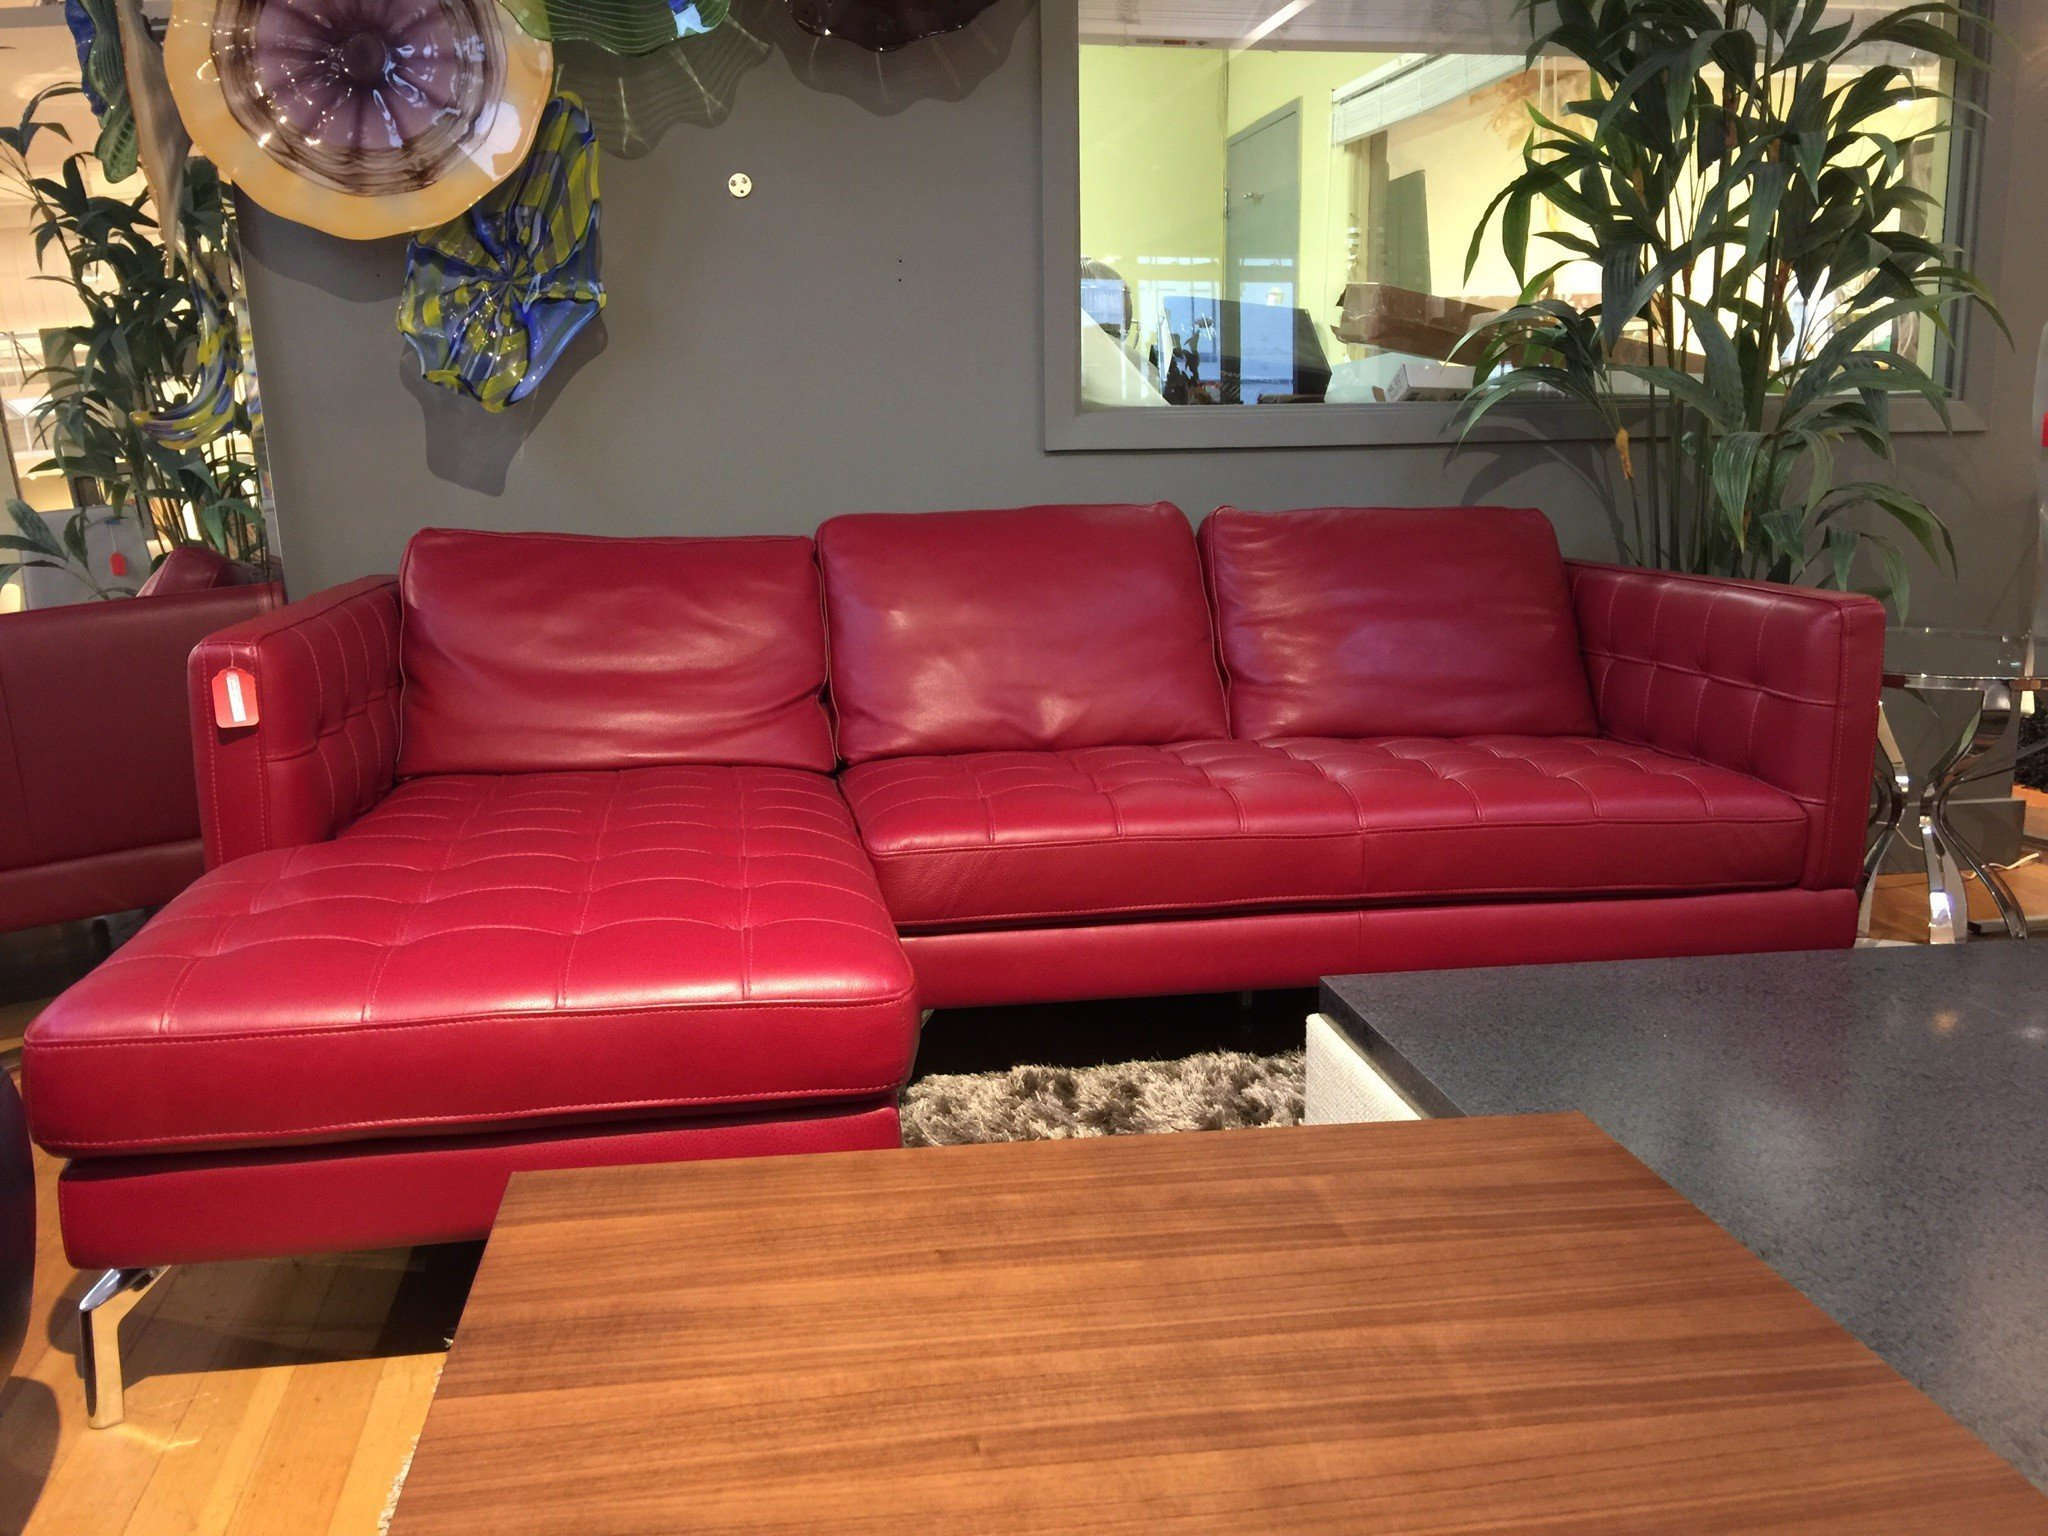 Furniture Stores In San Francisco Ca To Shop Furniture Expert Goes Incognito Rates Furniture